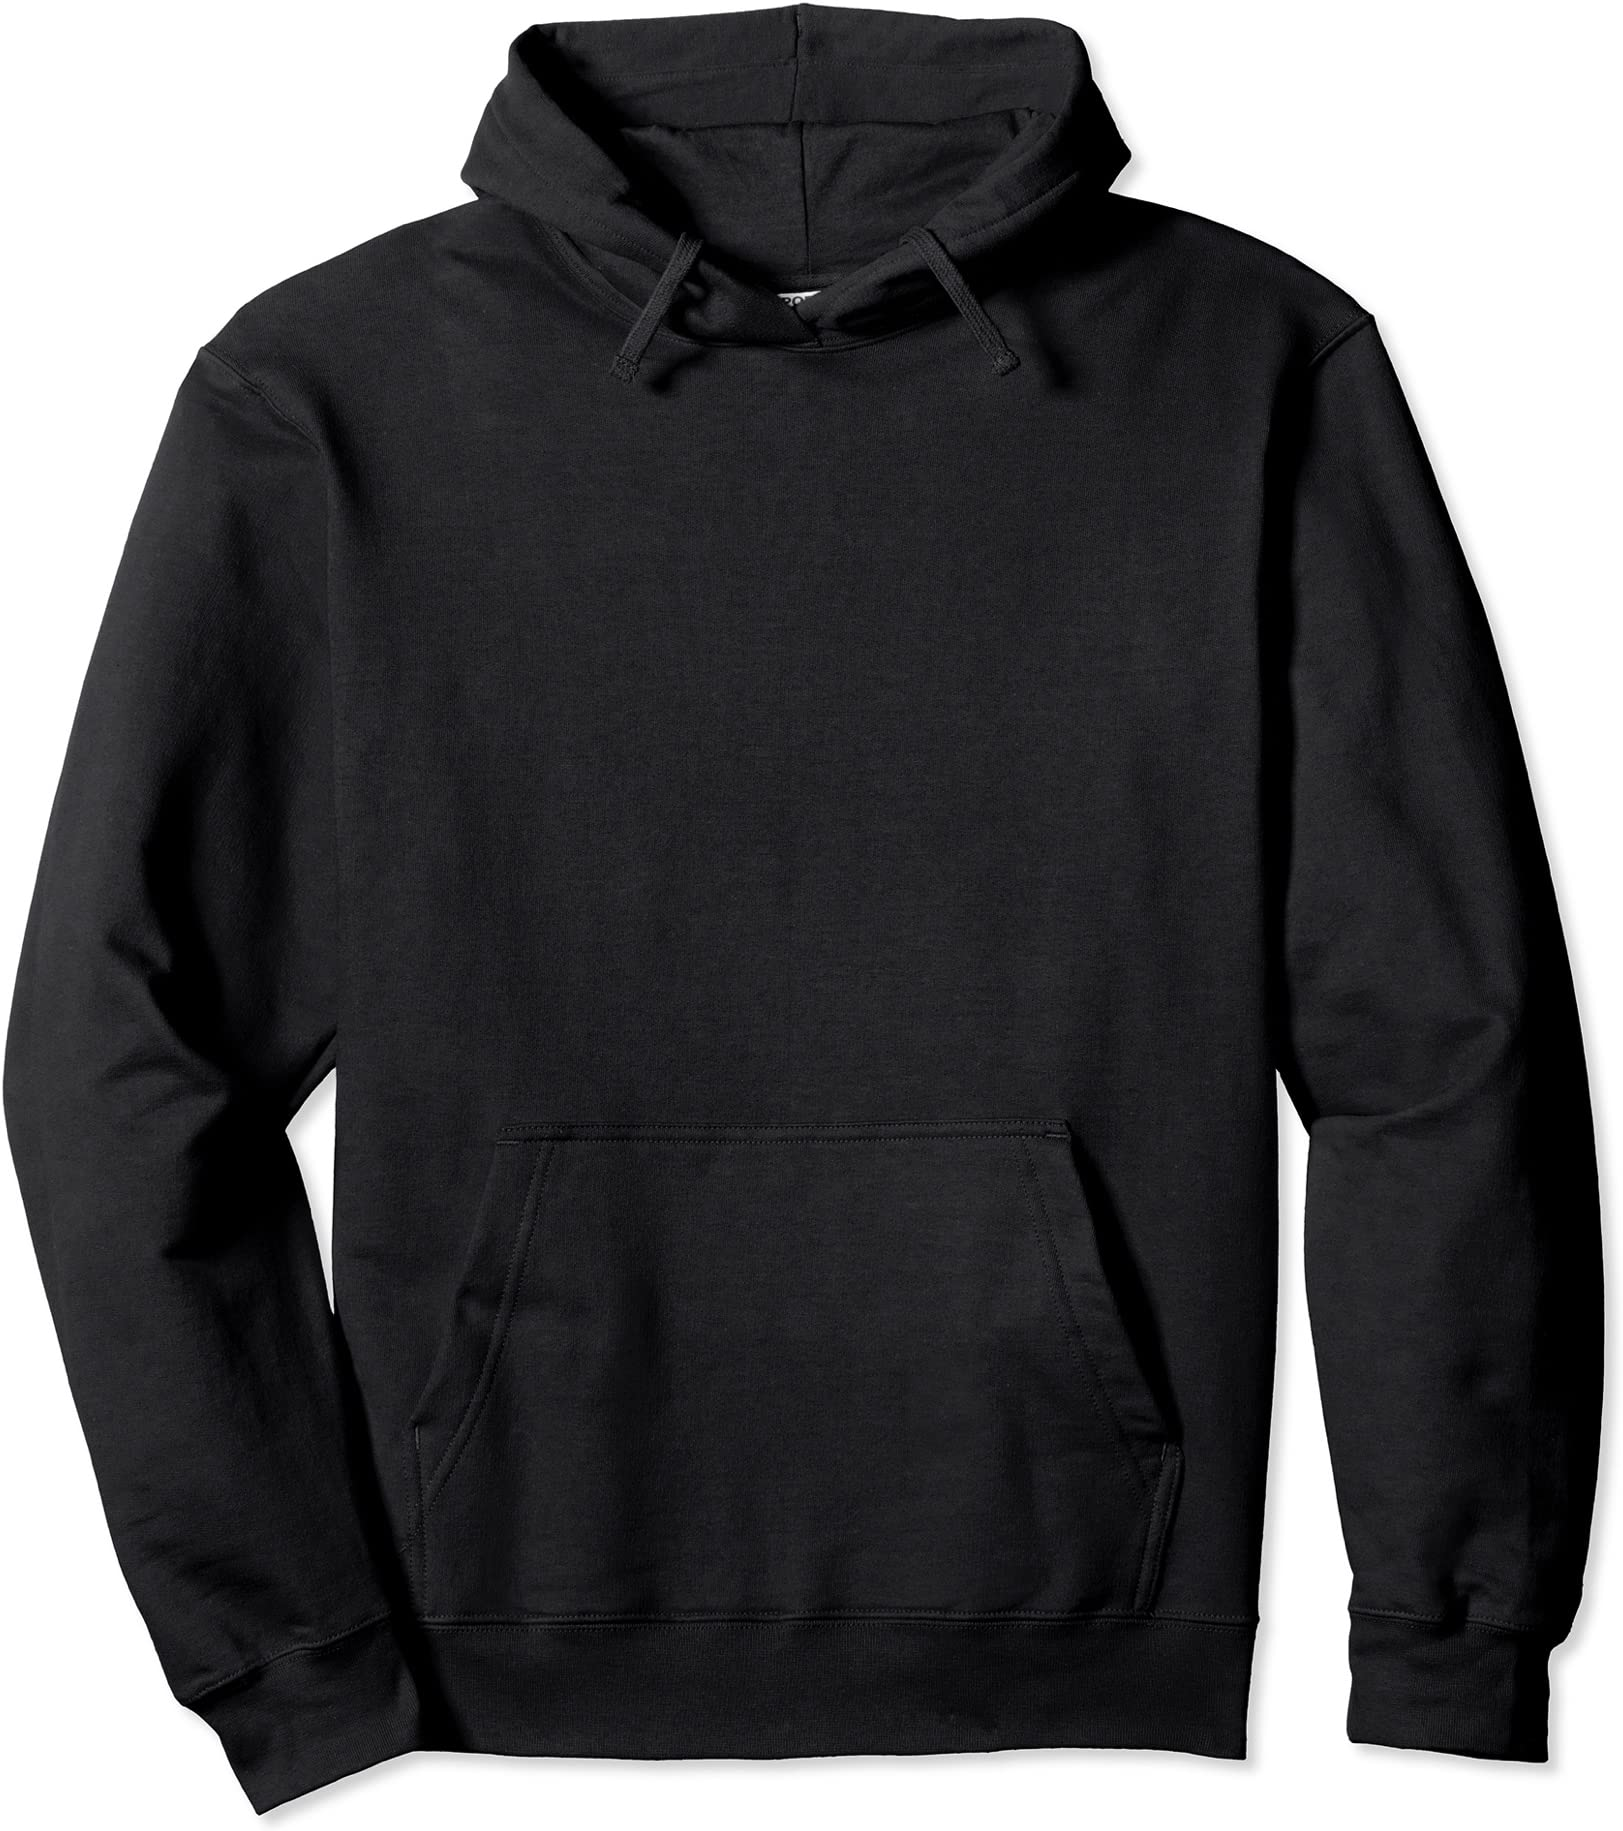 Hoodie Esprexx Soccer Keeper Goalkeeper My Goal is to Deny Yours